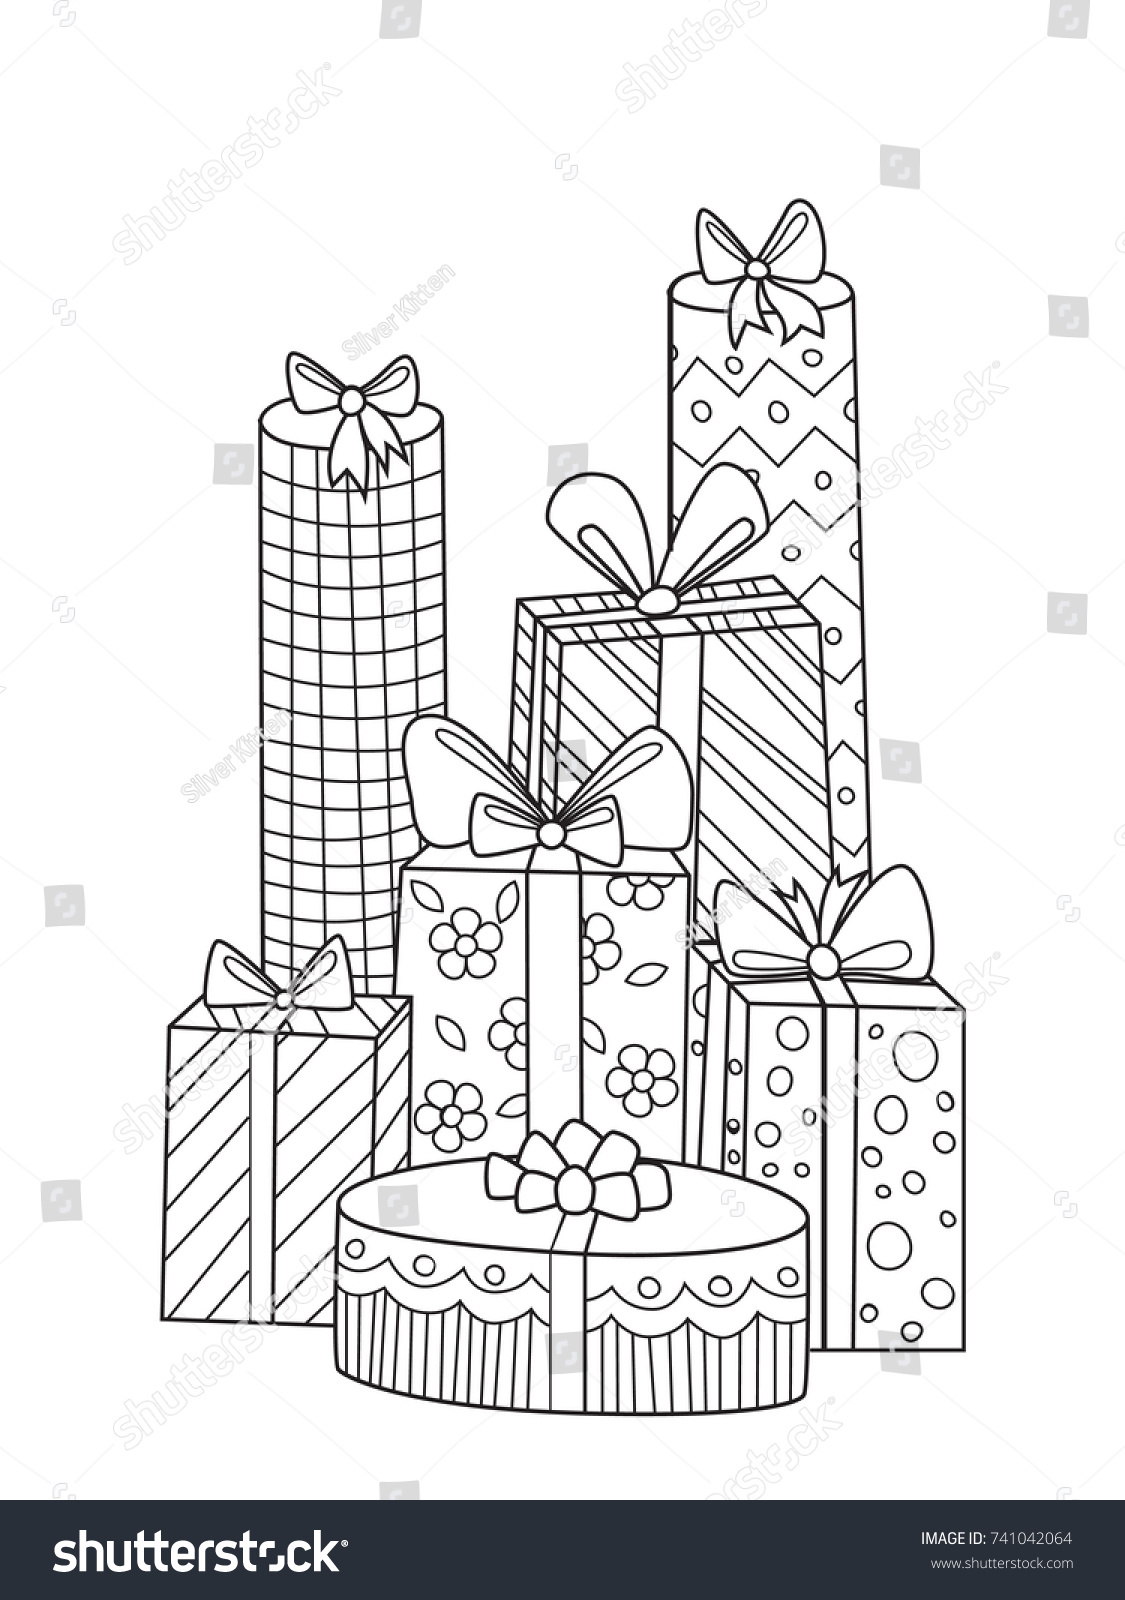 Outlined Doodle Antistress Coloring Gifts Coloring Stock Vector ...